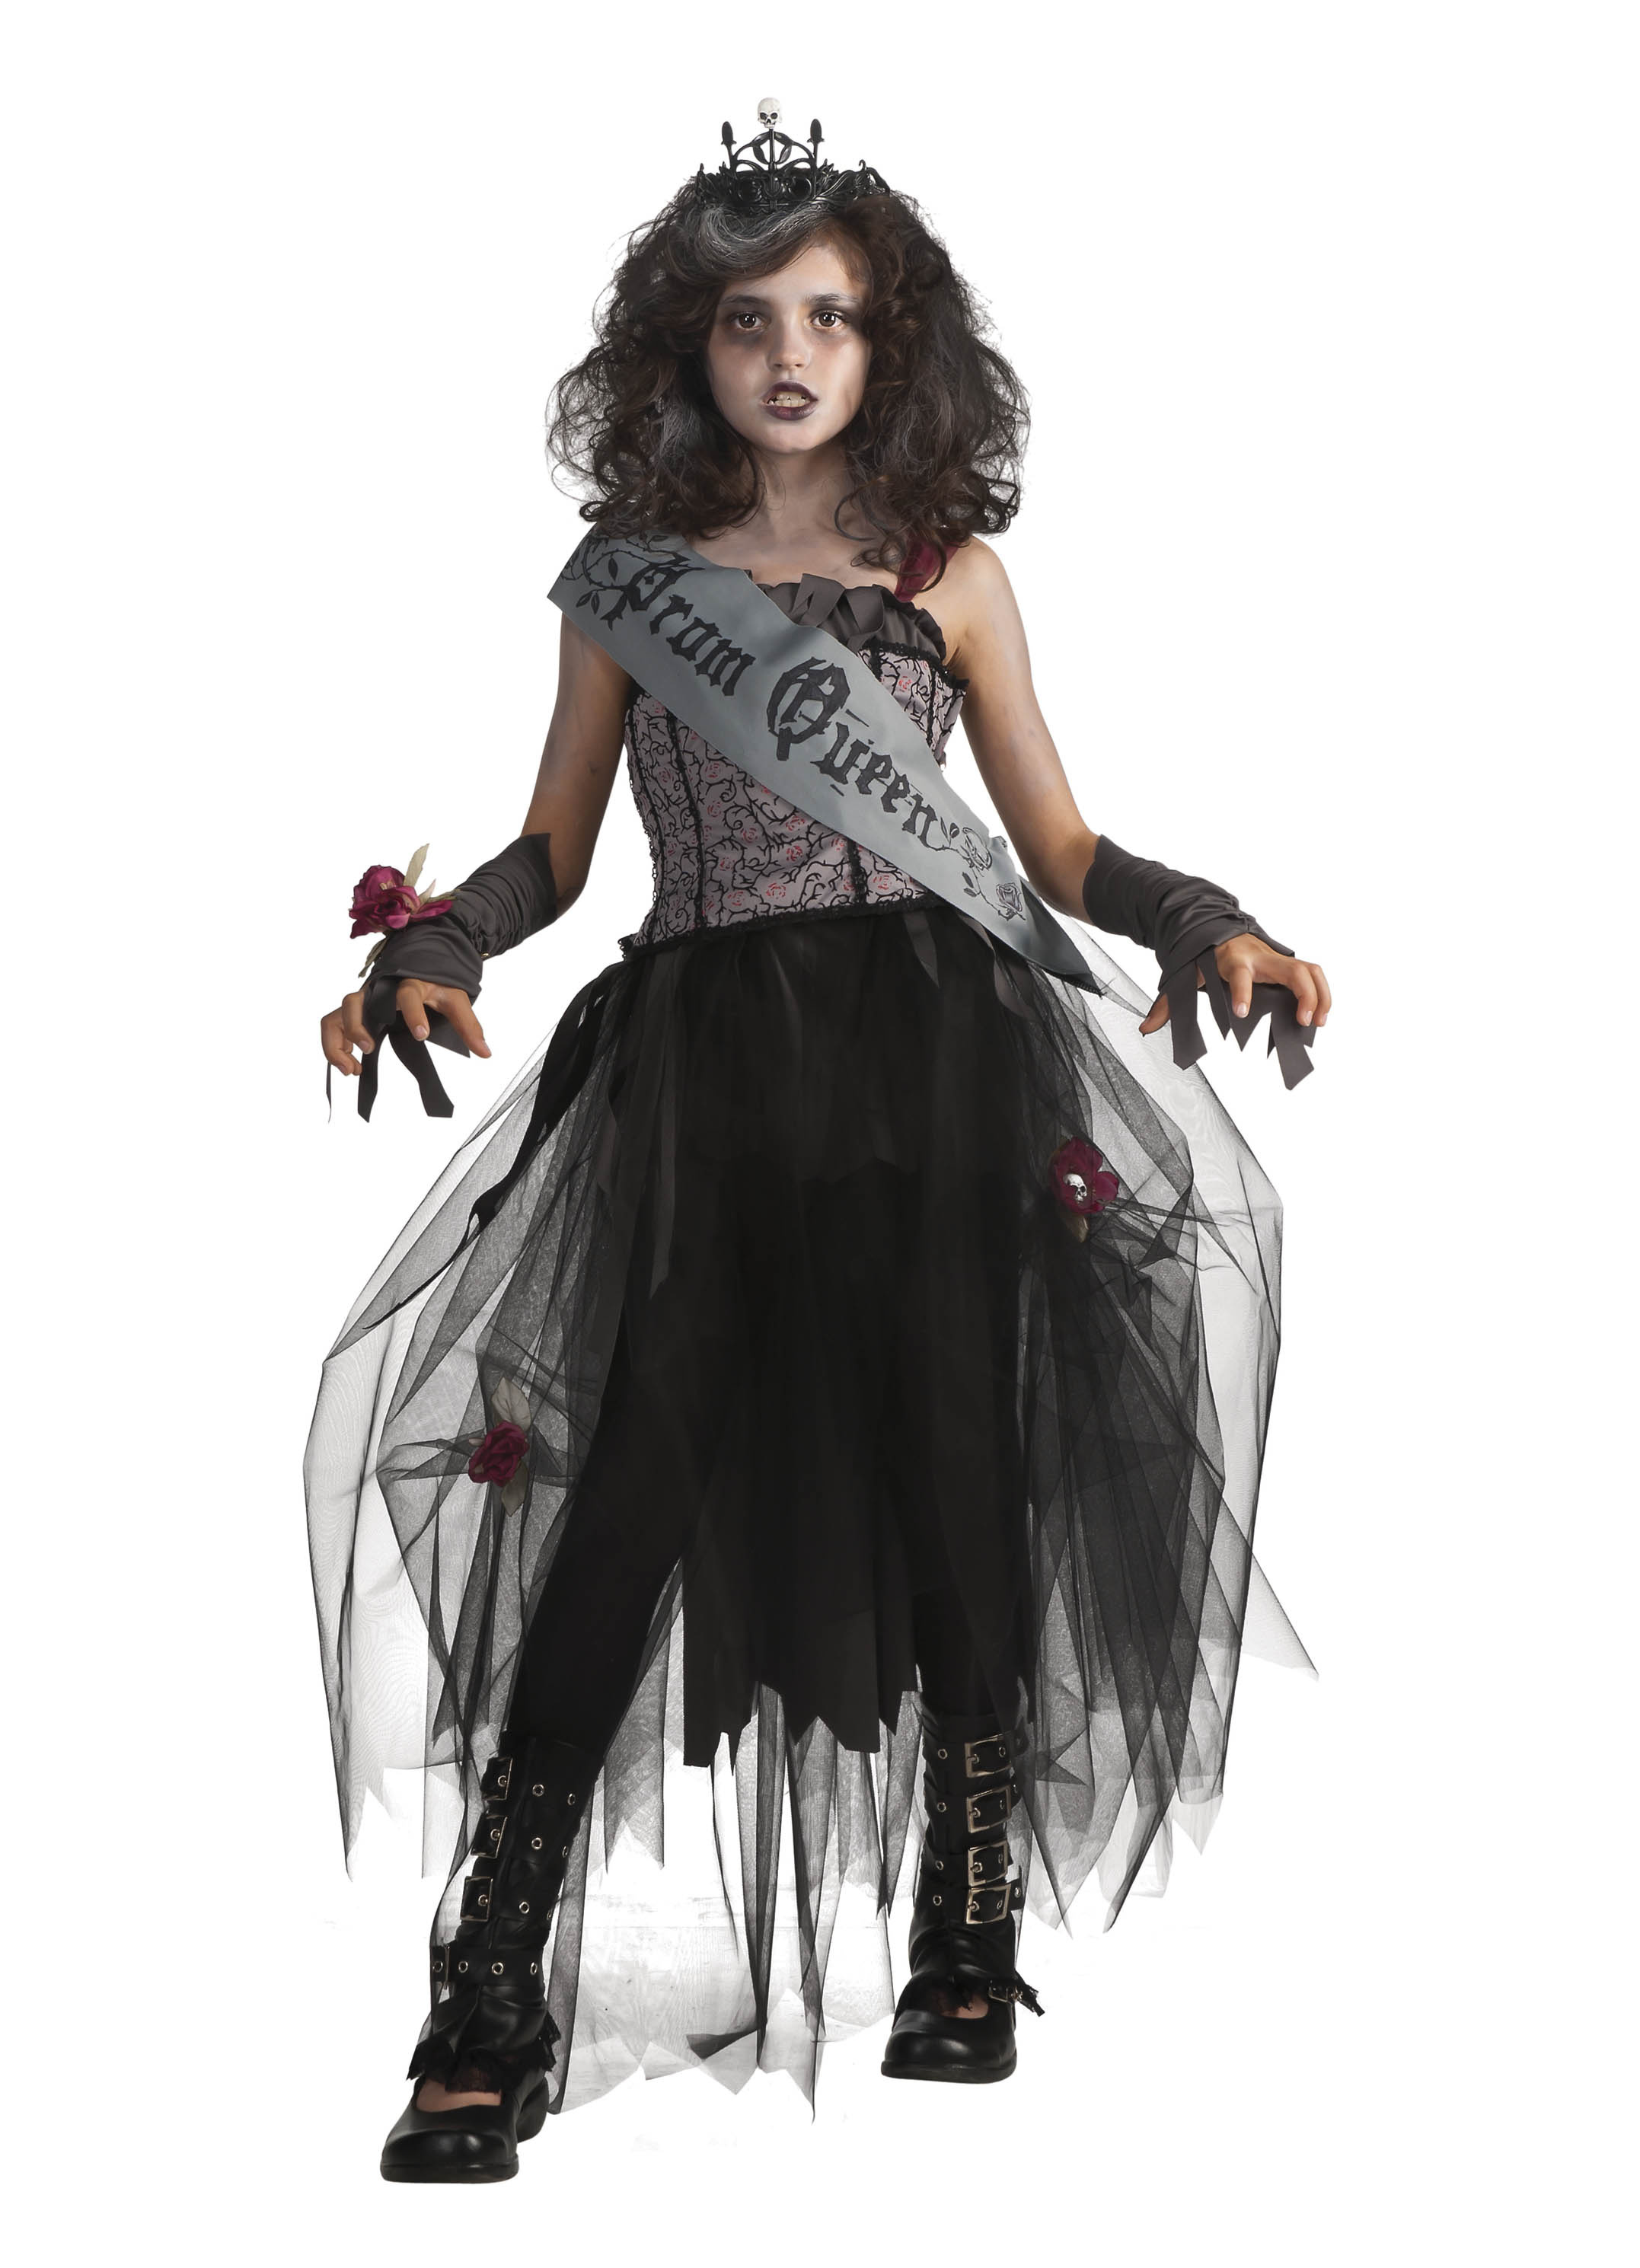 this product image released by part city shows a girl wearing a zombie queen costume